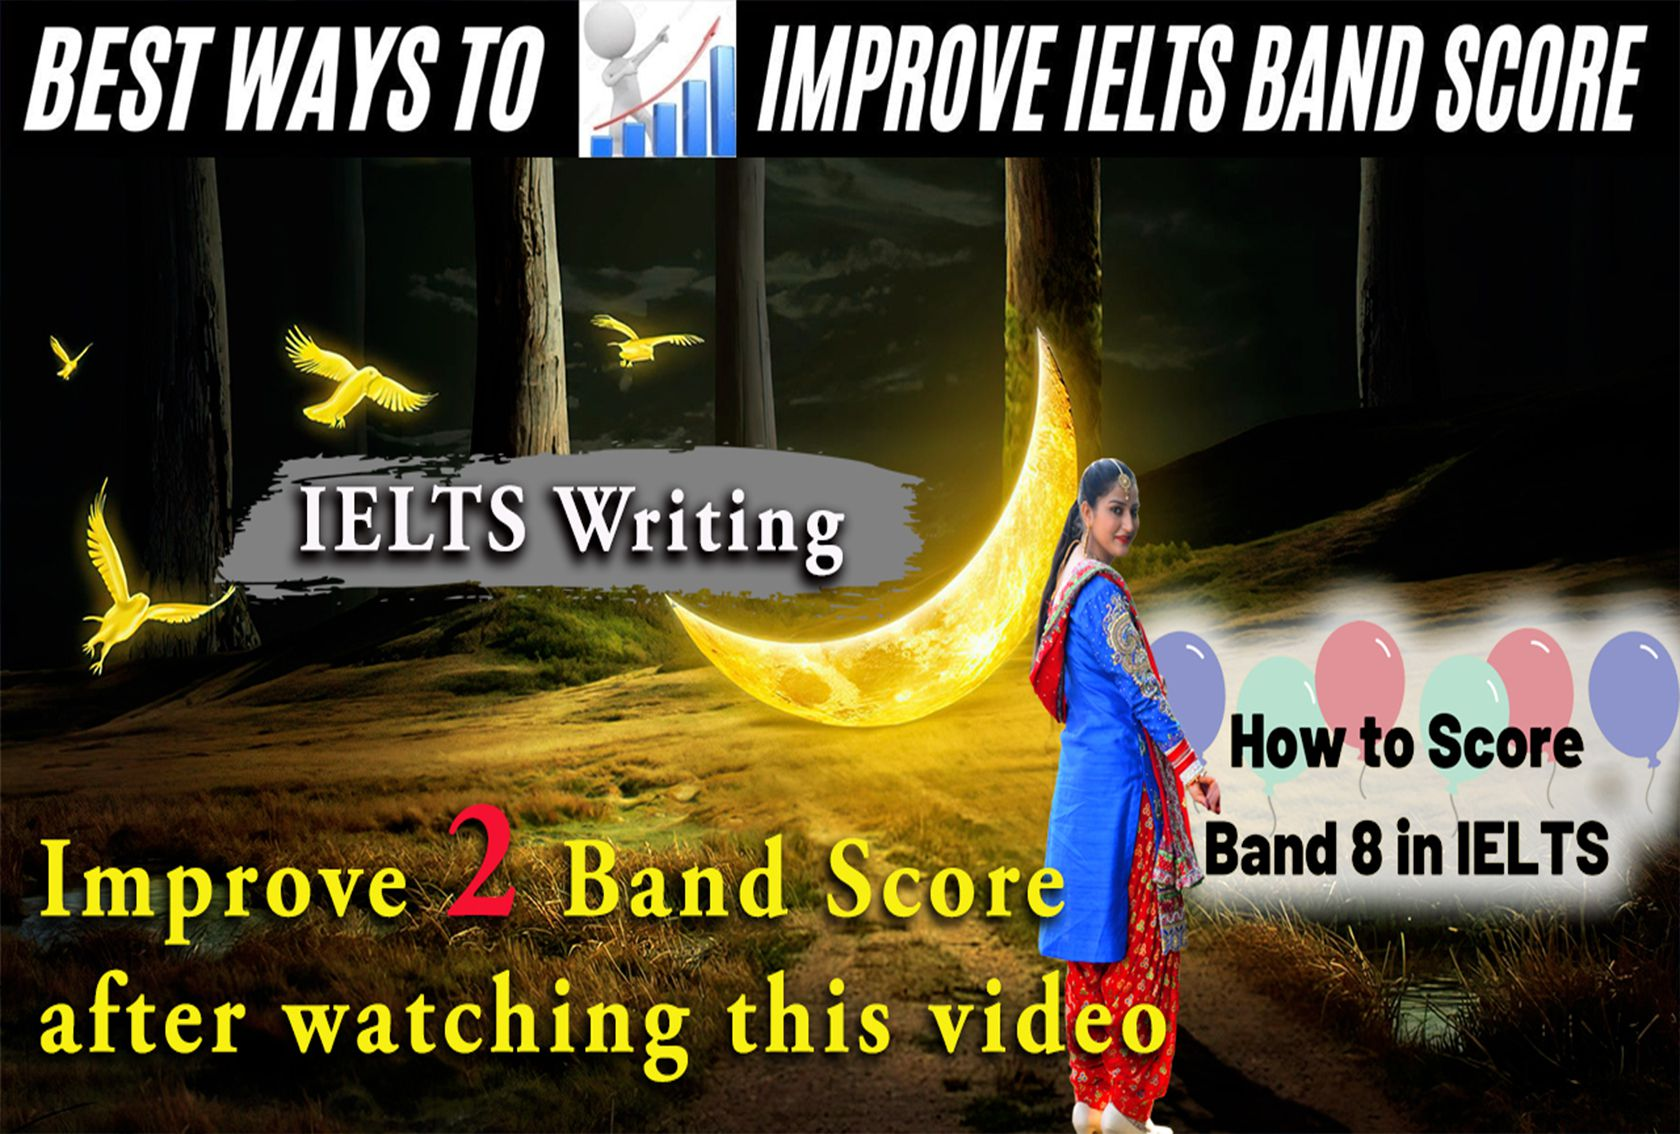 How to get 7 band in Ielts writing | How to improve your IELTS Writing